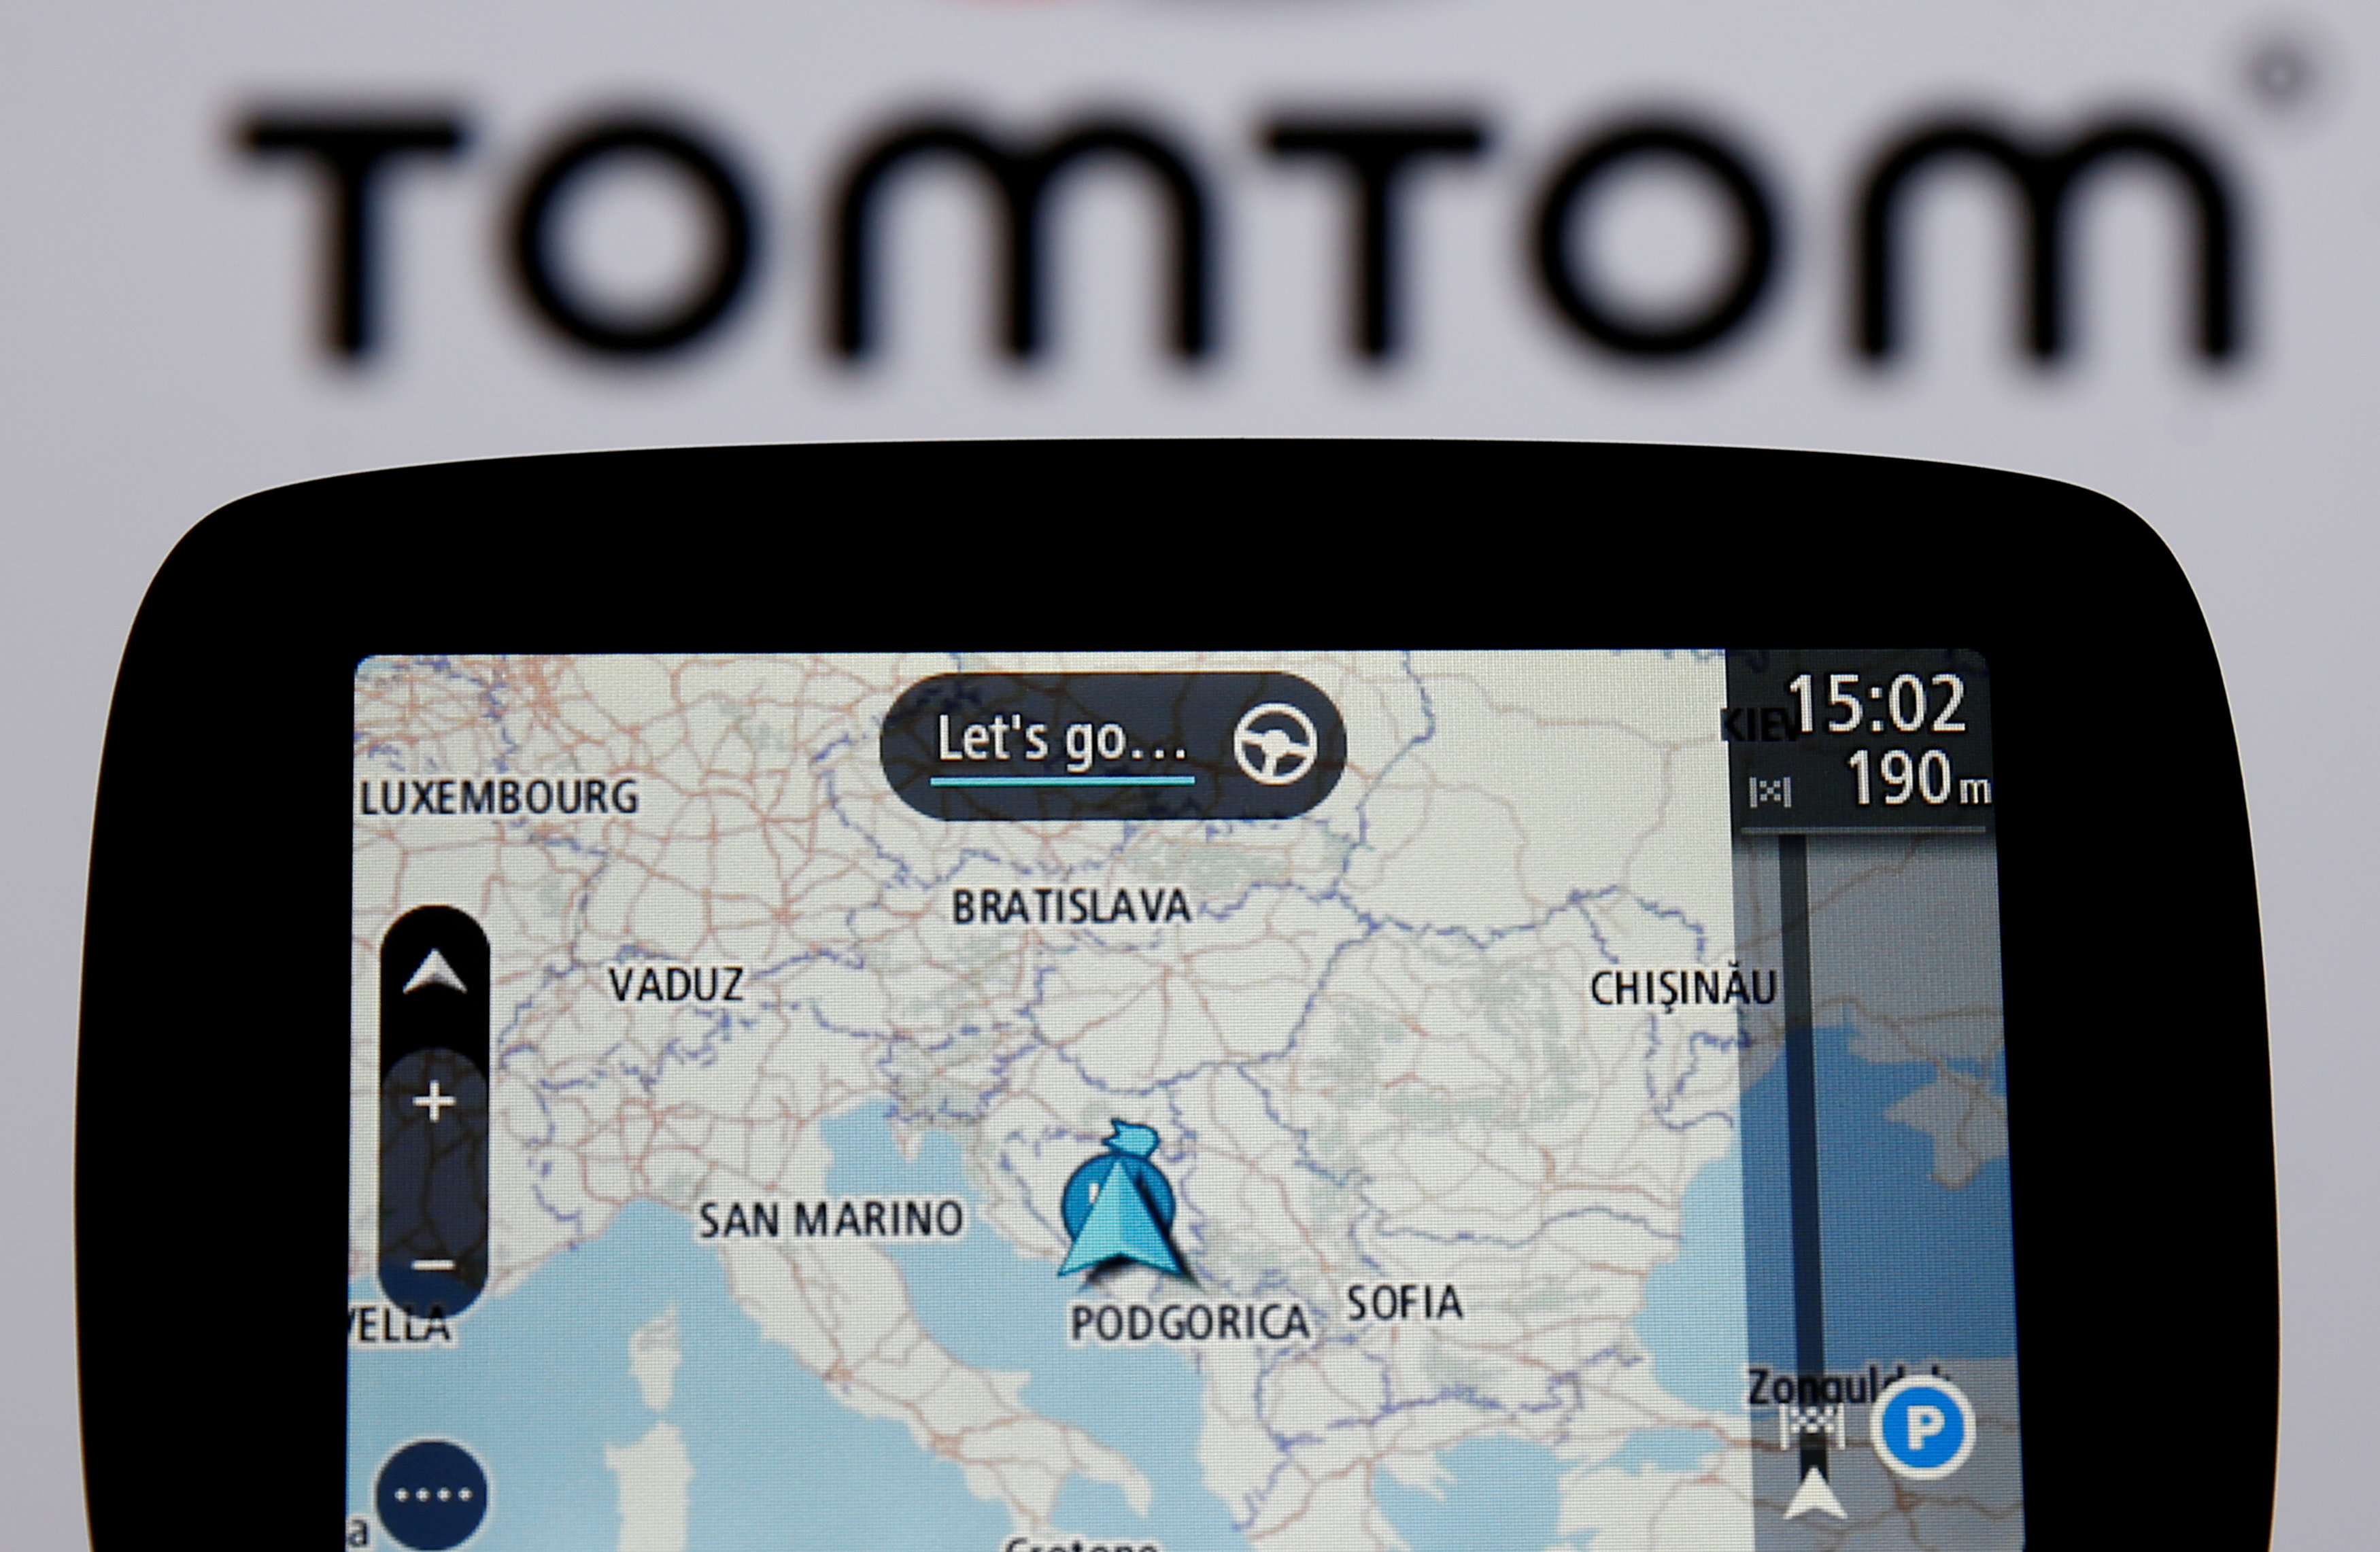 TomTom says Google deal with carmakers could hit its orders: ANP